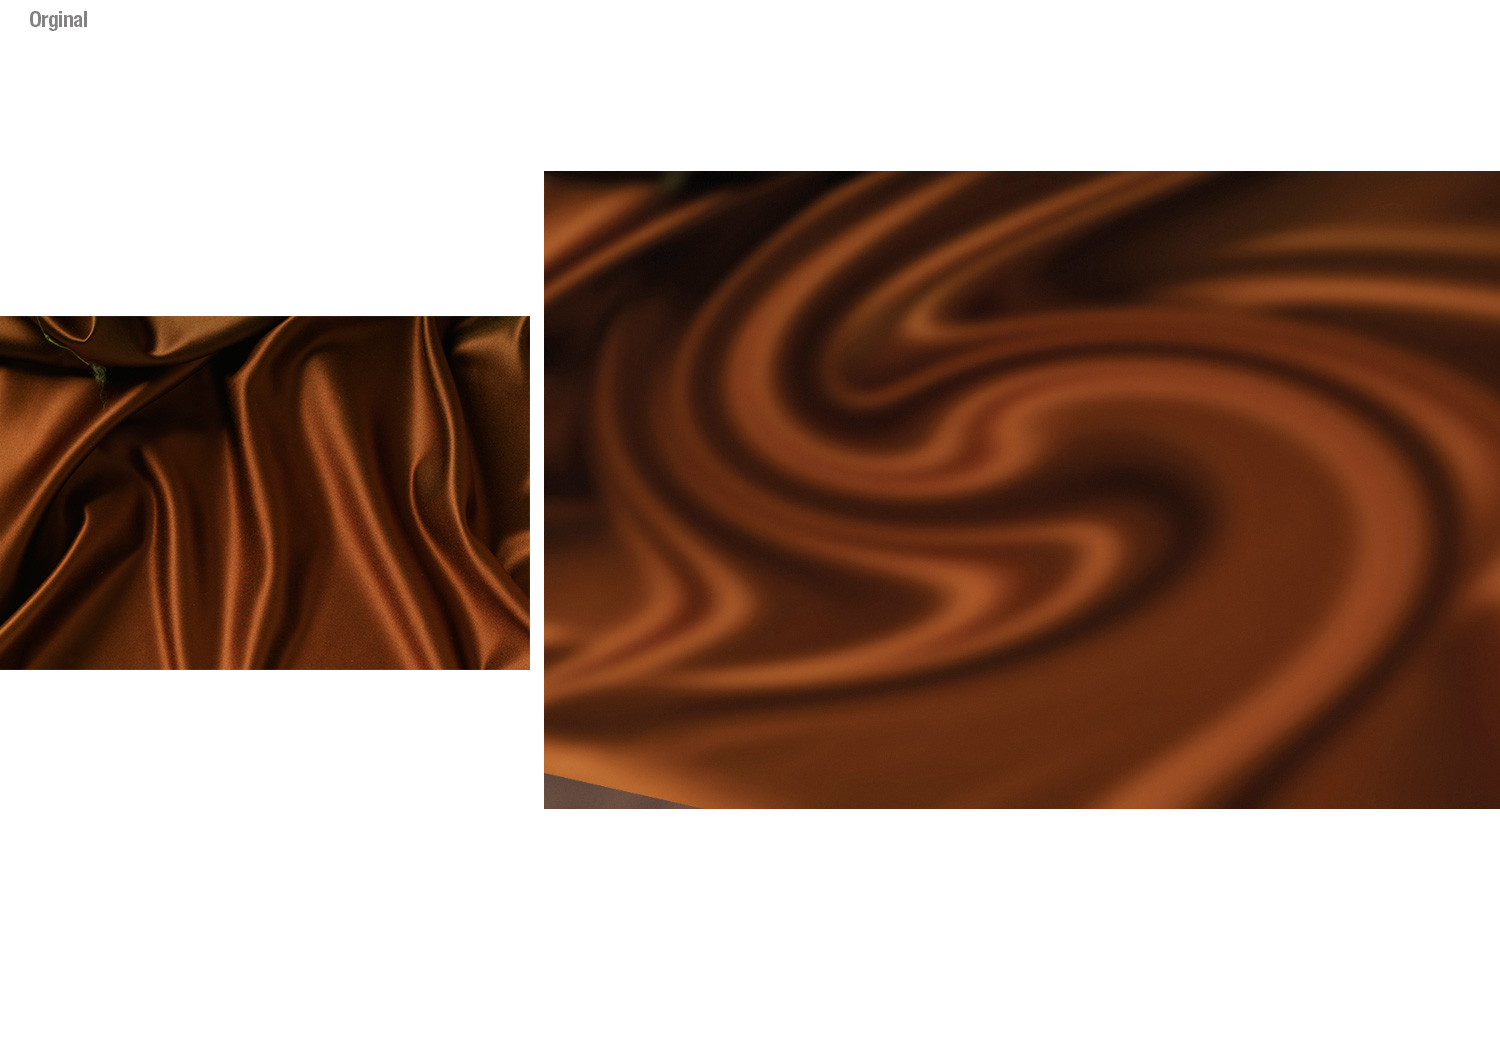 Retouching-Misc-chocolate-swirl.jpg